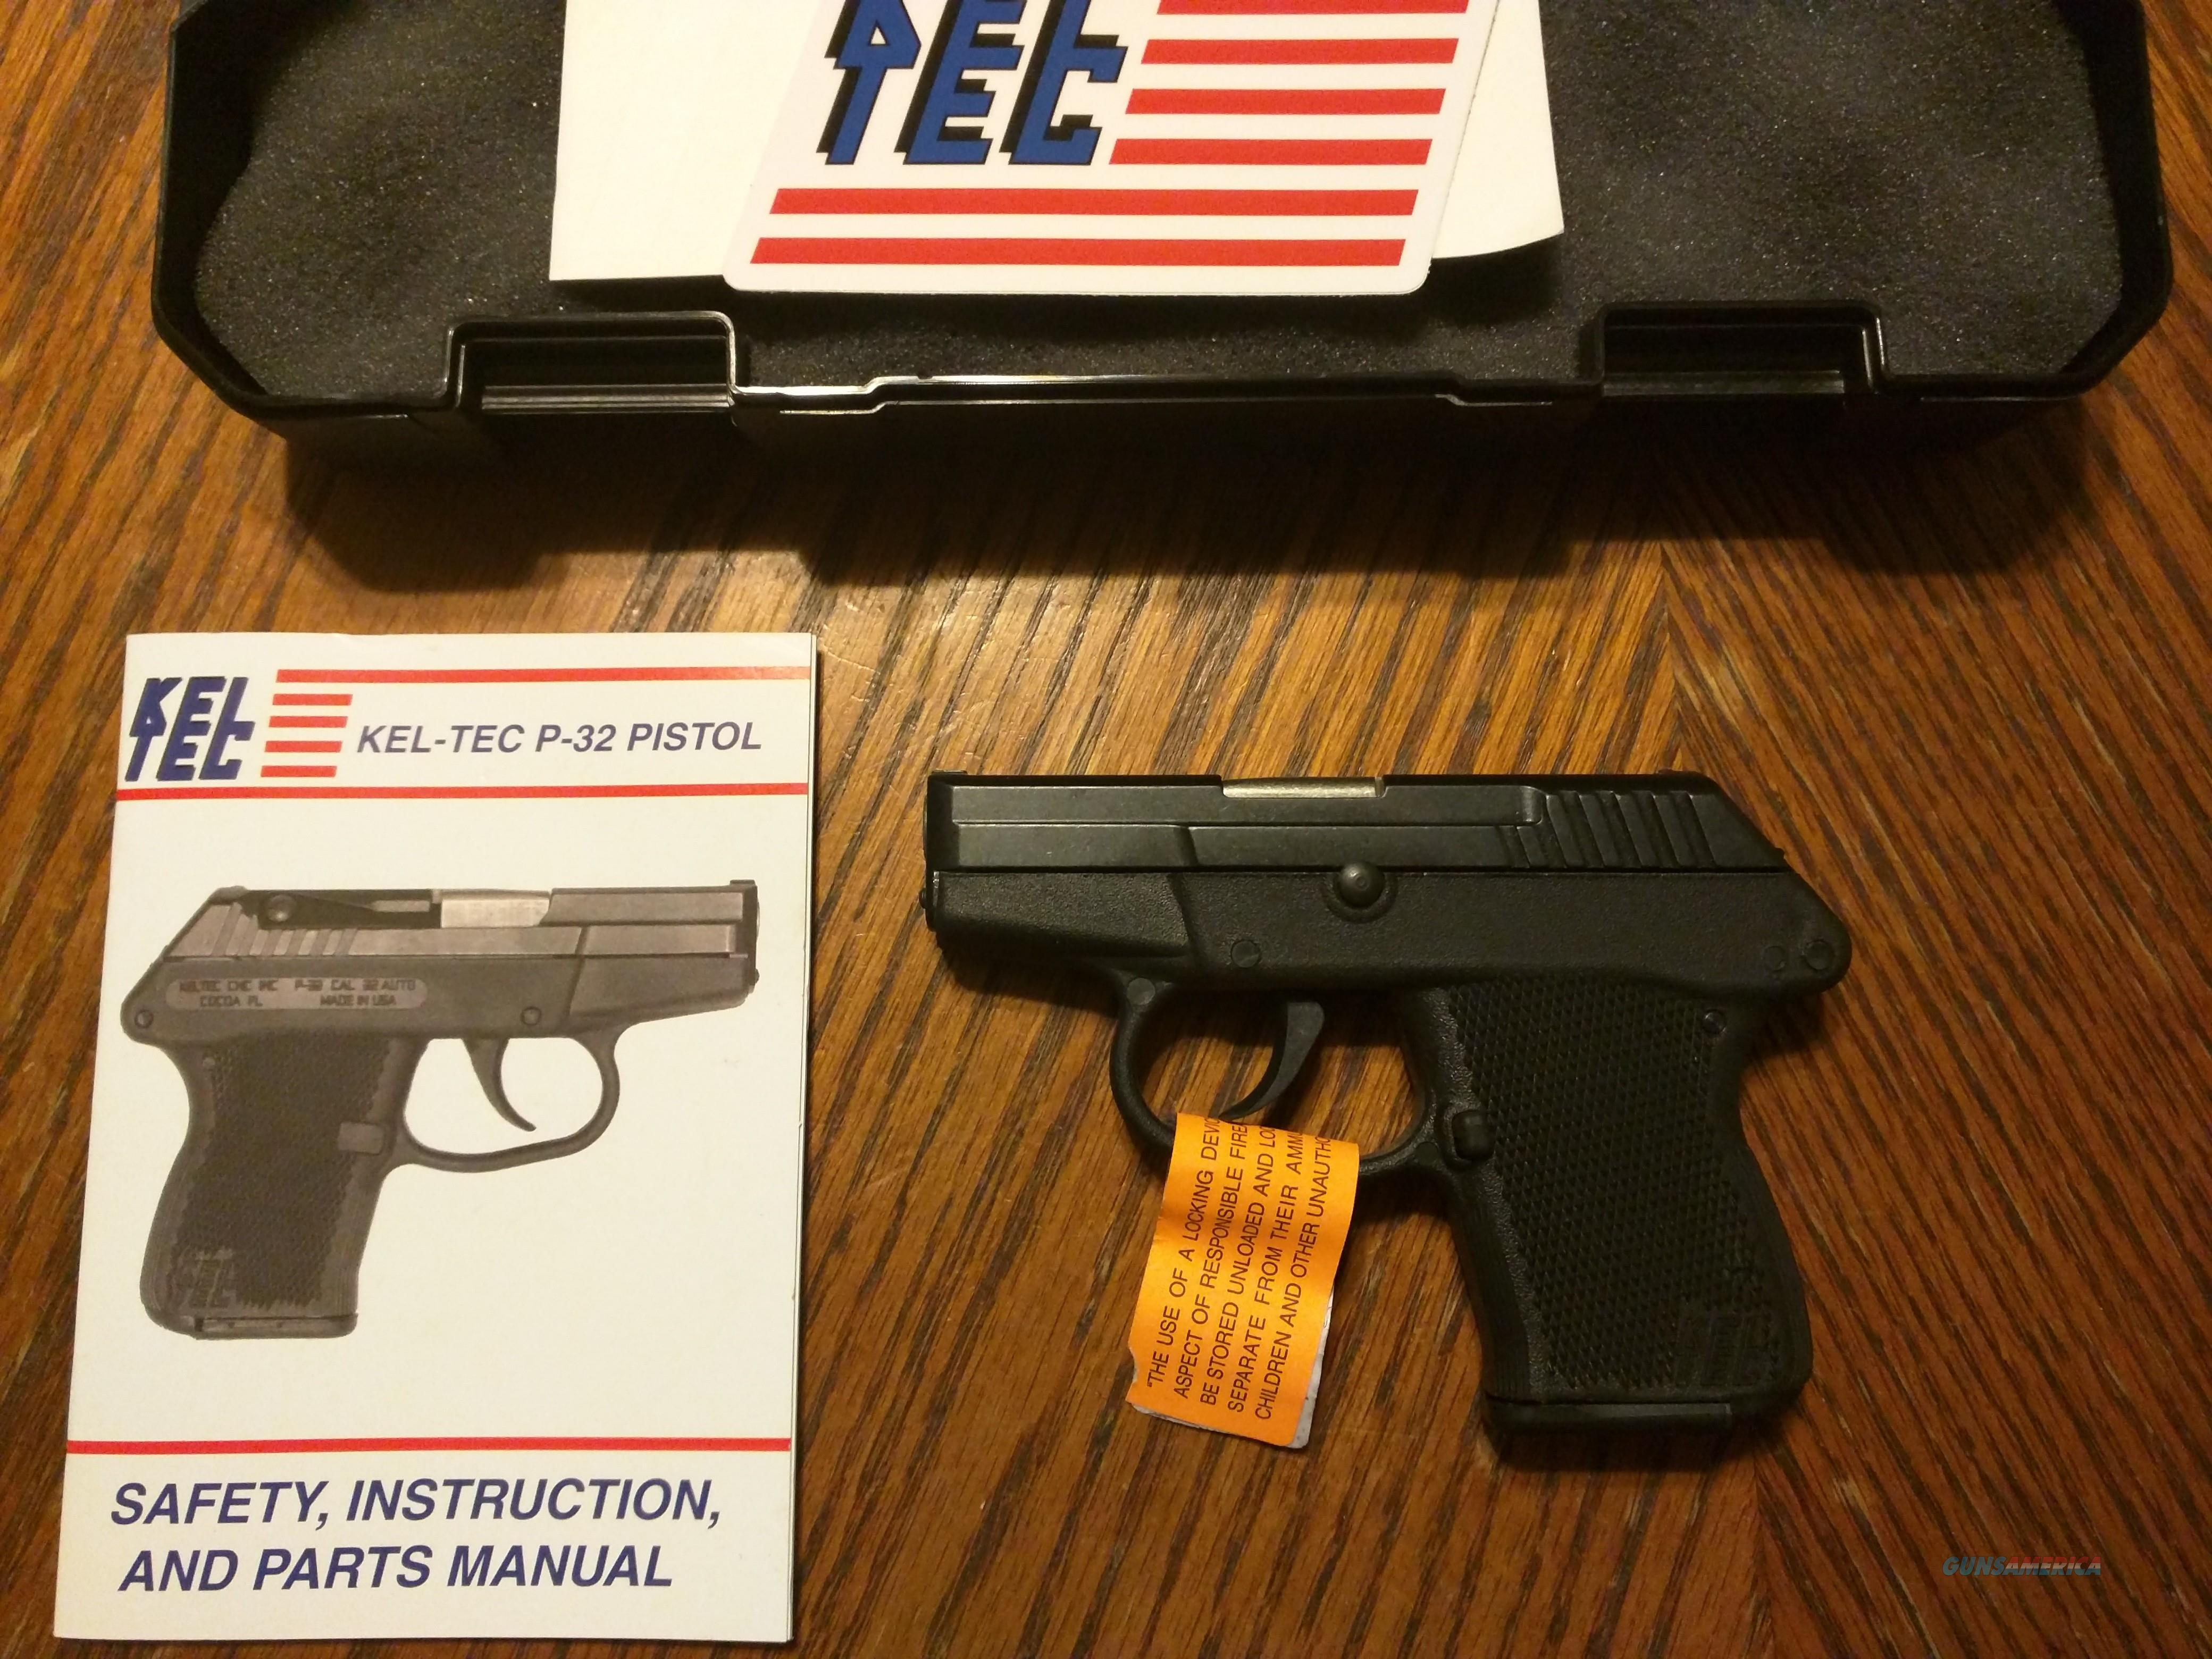 Keltec Kel Tec P32 32 ACP Pistol Tiny Pocket Pistol, Concealed Carry, fits  in the palm of your Hand, Lightweight NIB 7 Rd Mag DAO Trigger